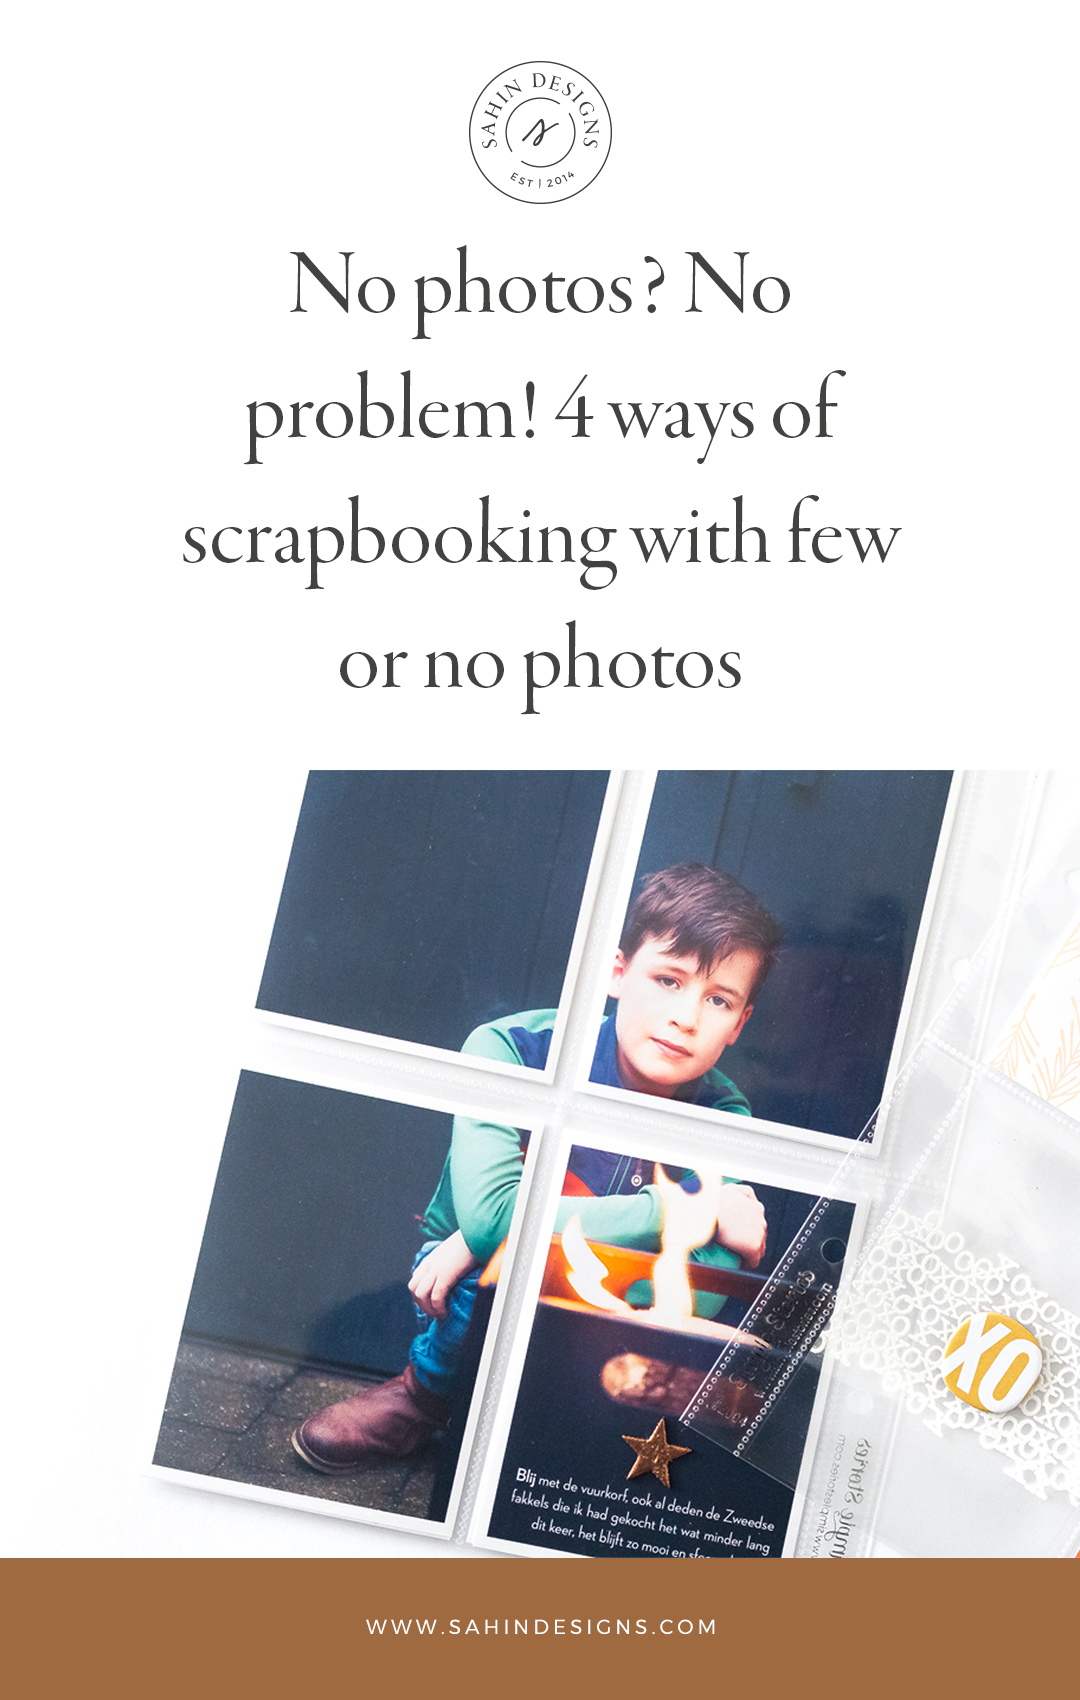 4 ways of scrapbooking with few or no photos - Sahin Designs